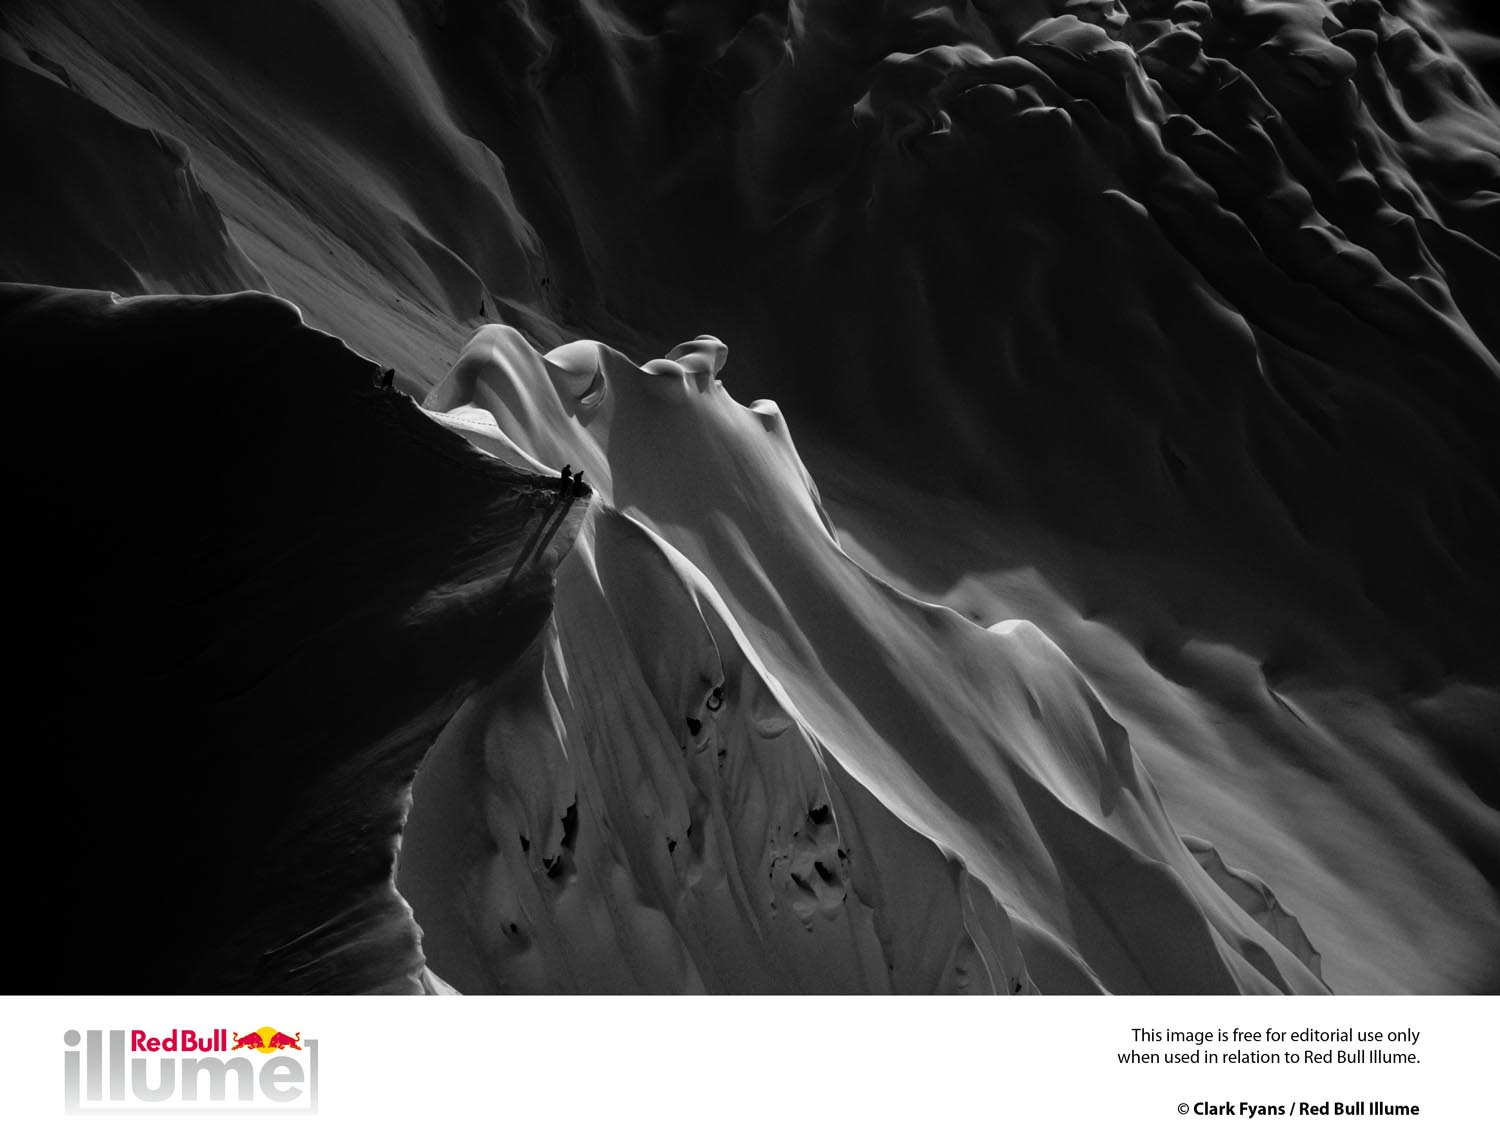 ©Clark Fyans / 2013 Red Bull Illume Illumination Category Finalist Photo